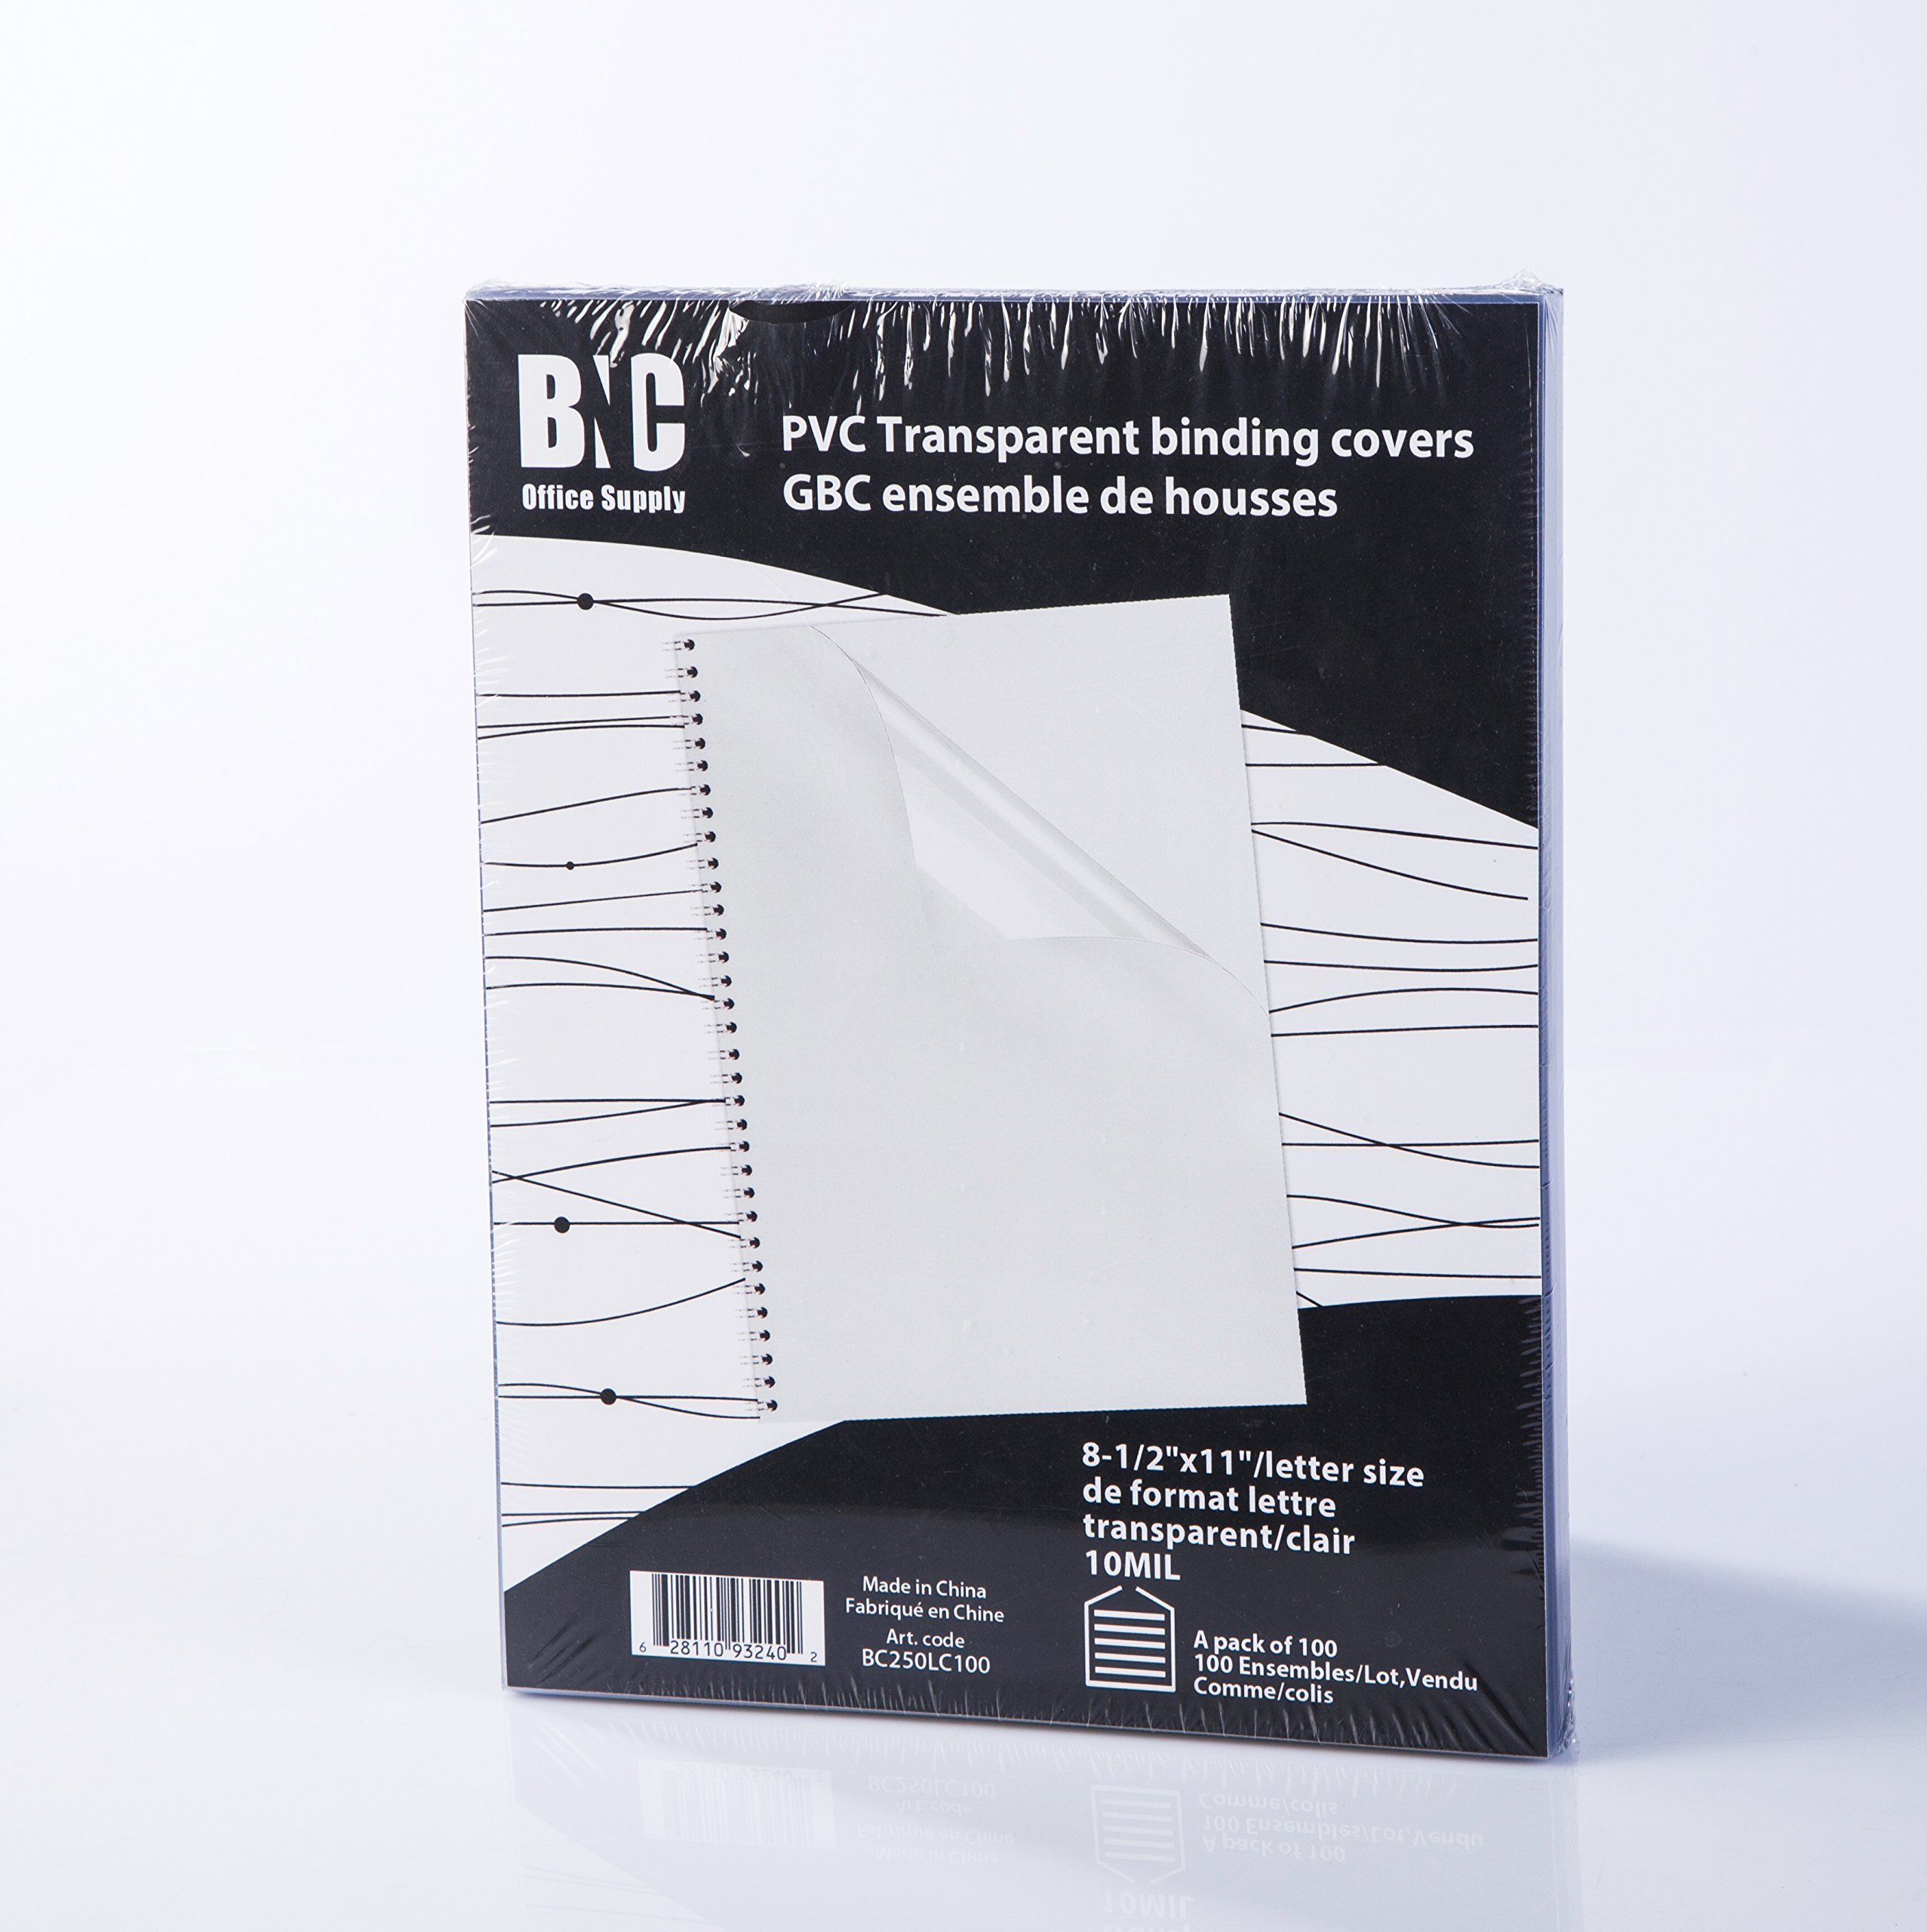 BNC 10 Mil 8-1/2 x 11 Inches, Letter Size PVC Binding Covers - Pack of 100, Clear (BC250LC100)